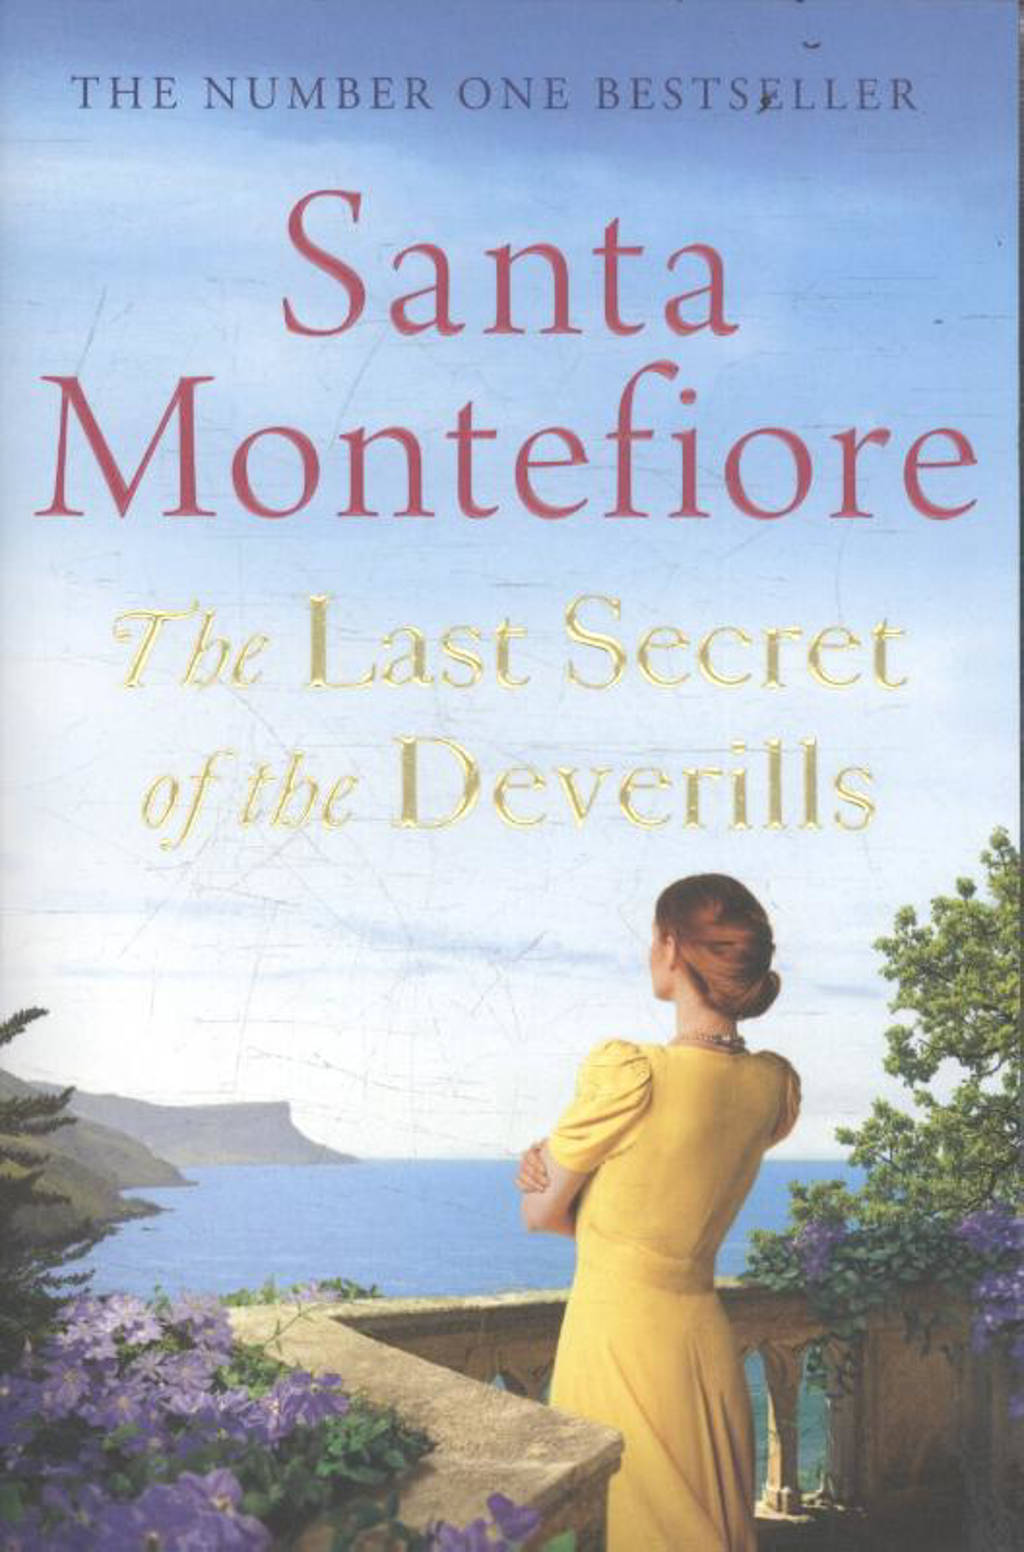 The Last Secret of the Deverills - Montefiore, Santa